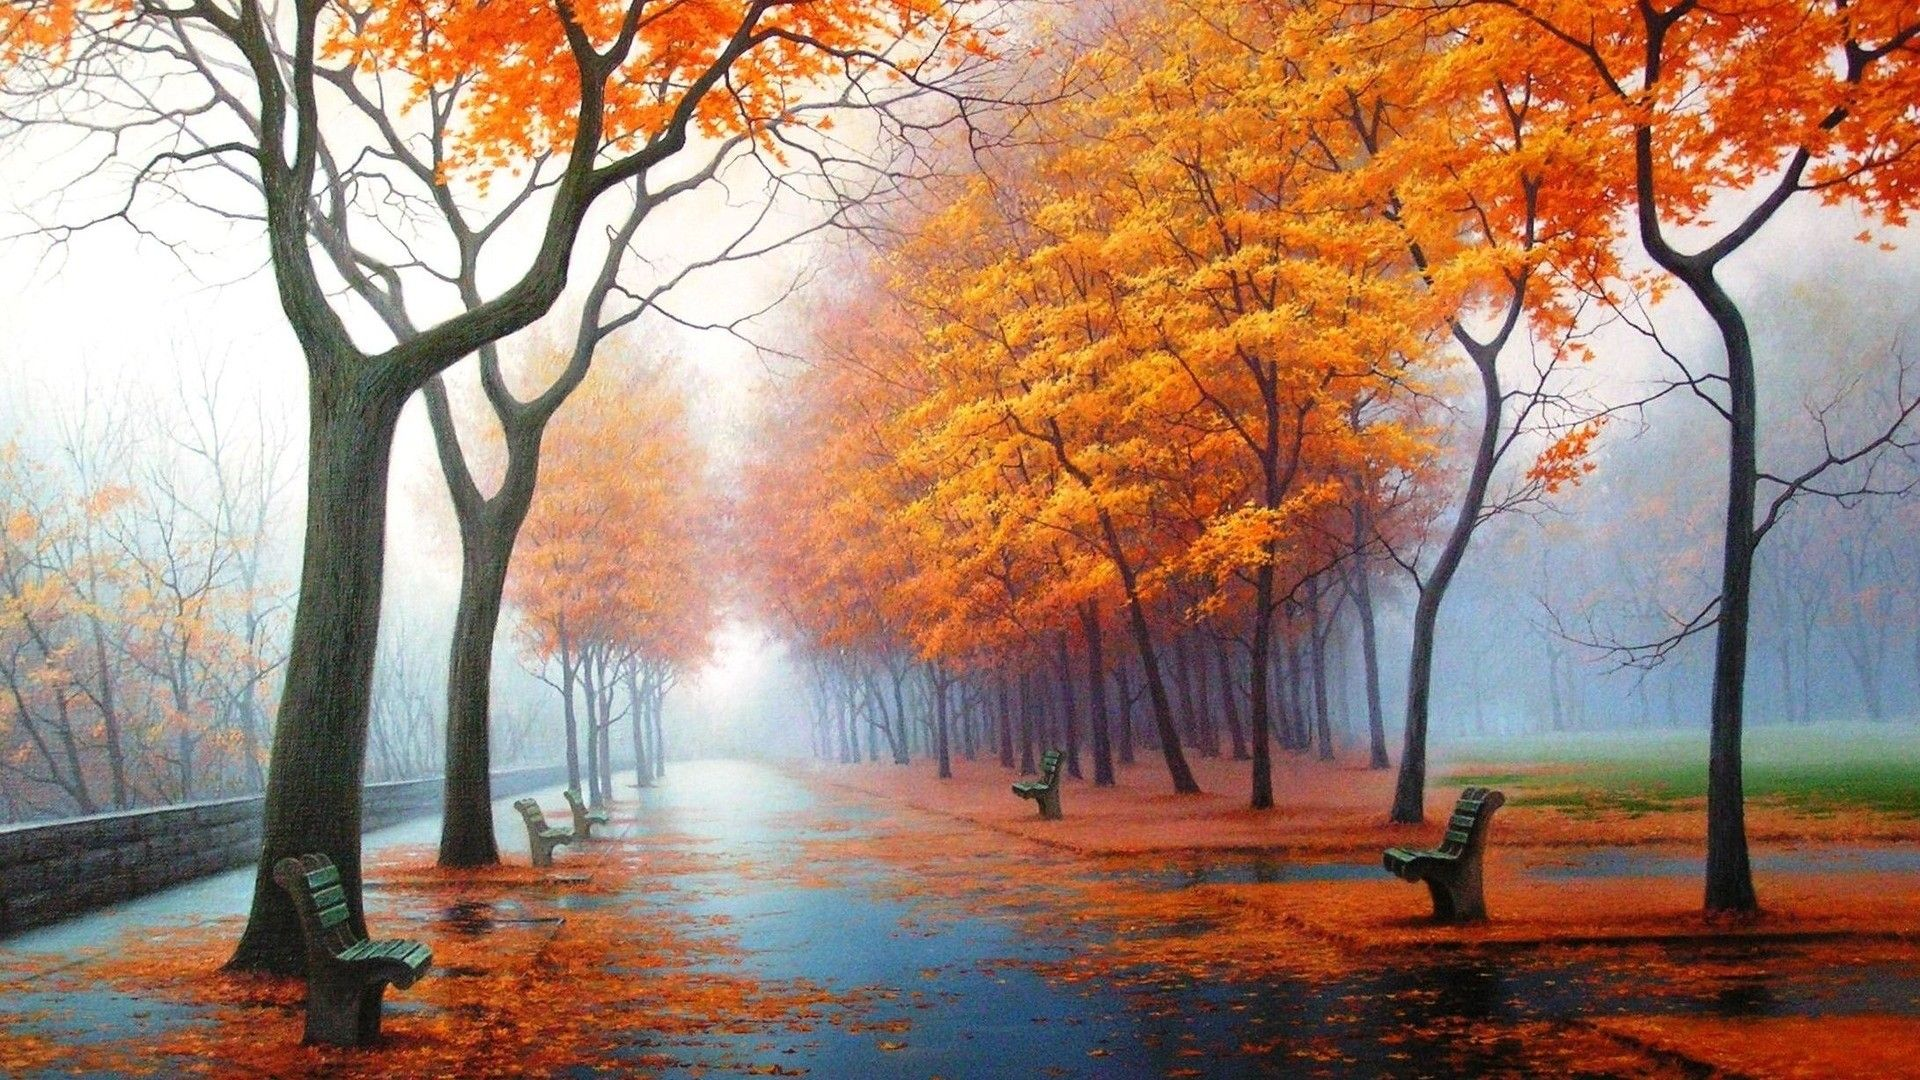 Autumn Anime Scenery Wallpapers Wallpaper Cave